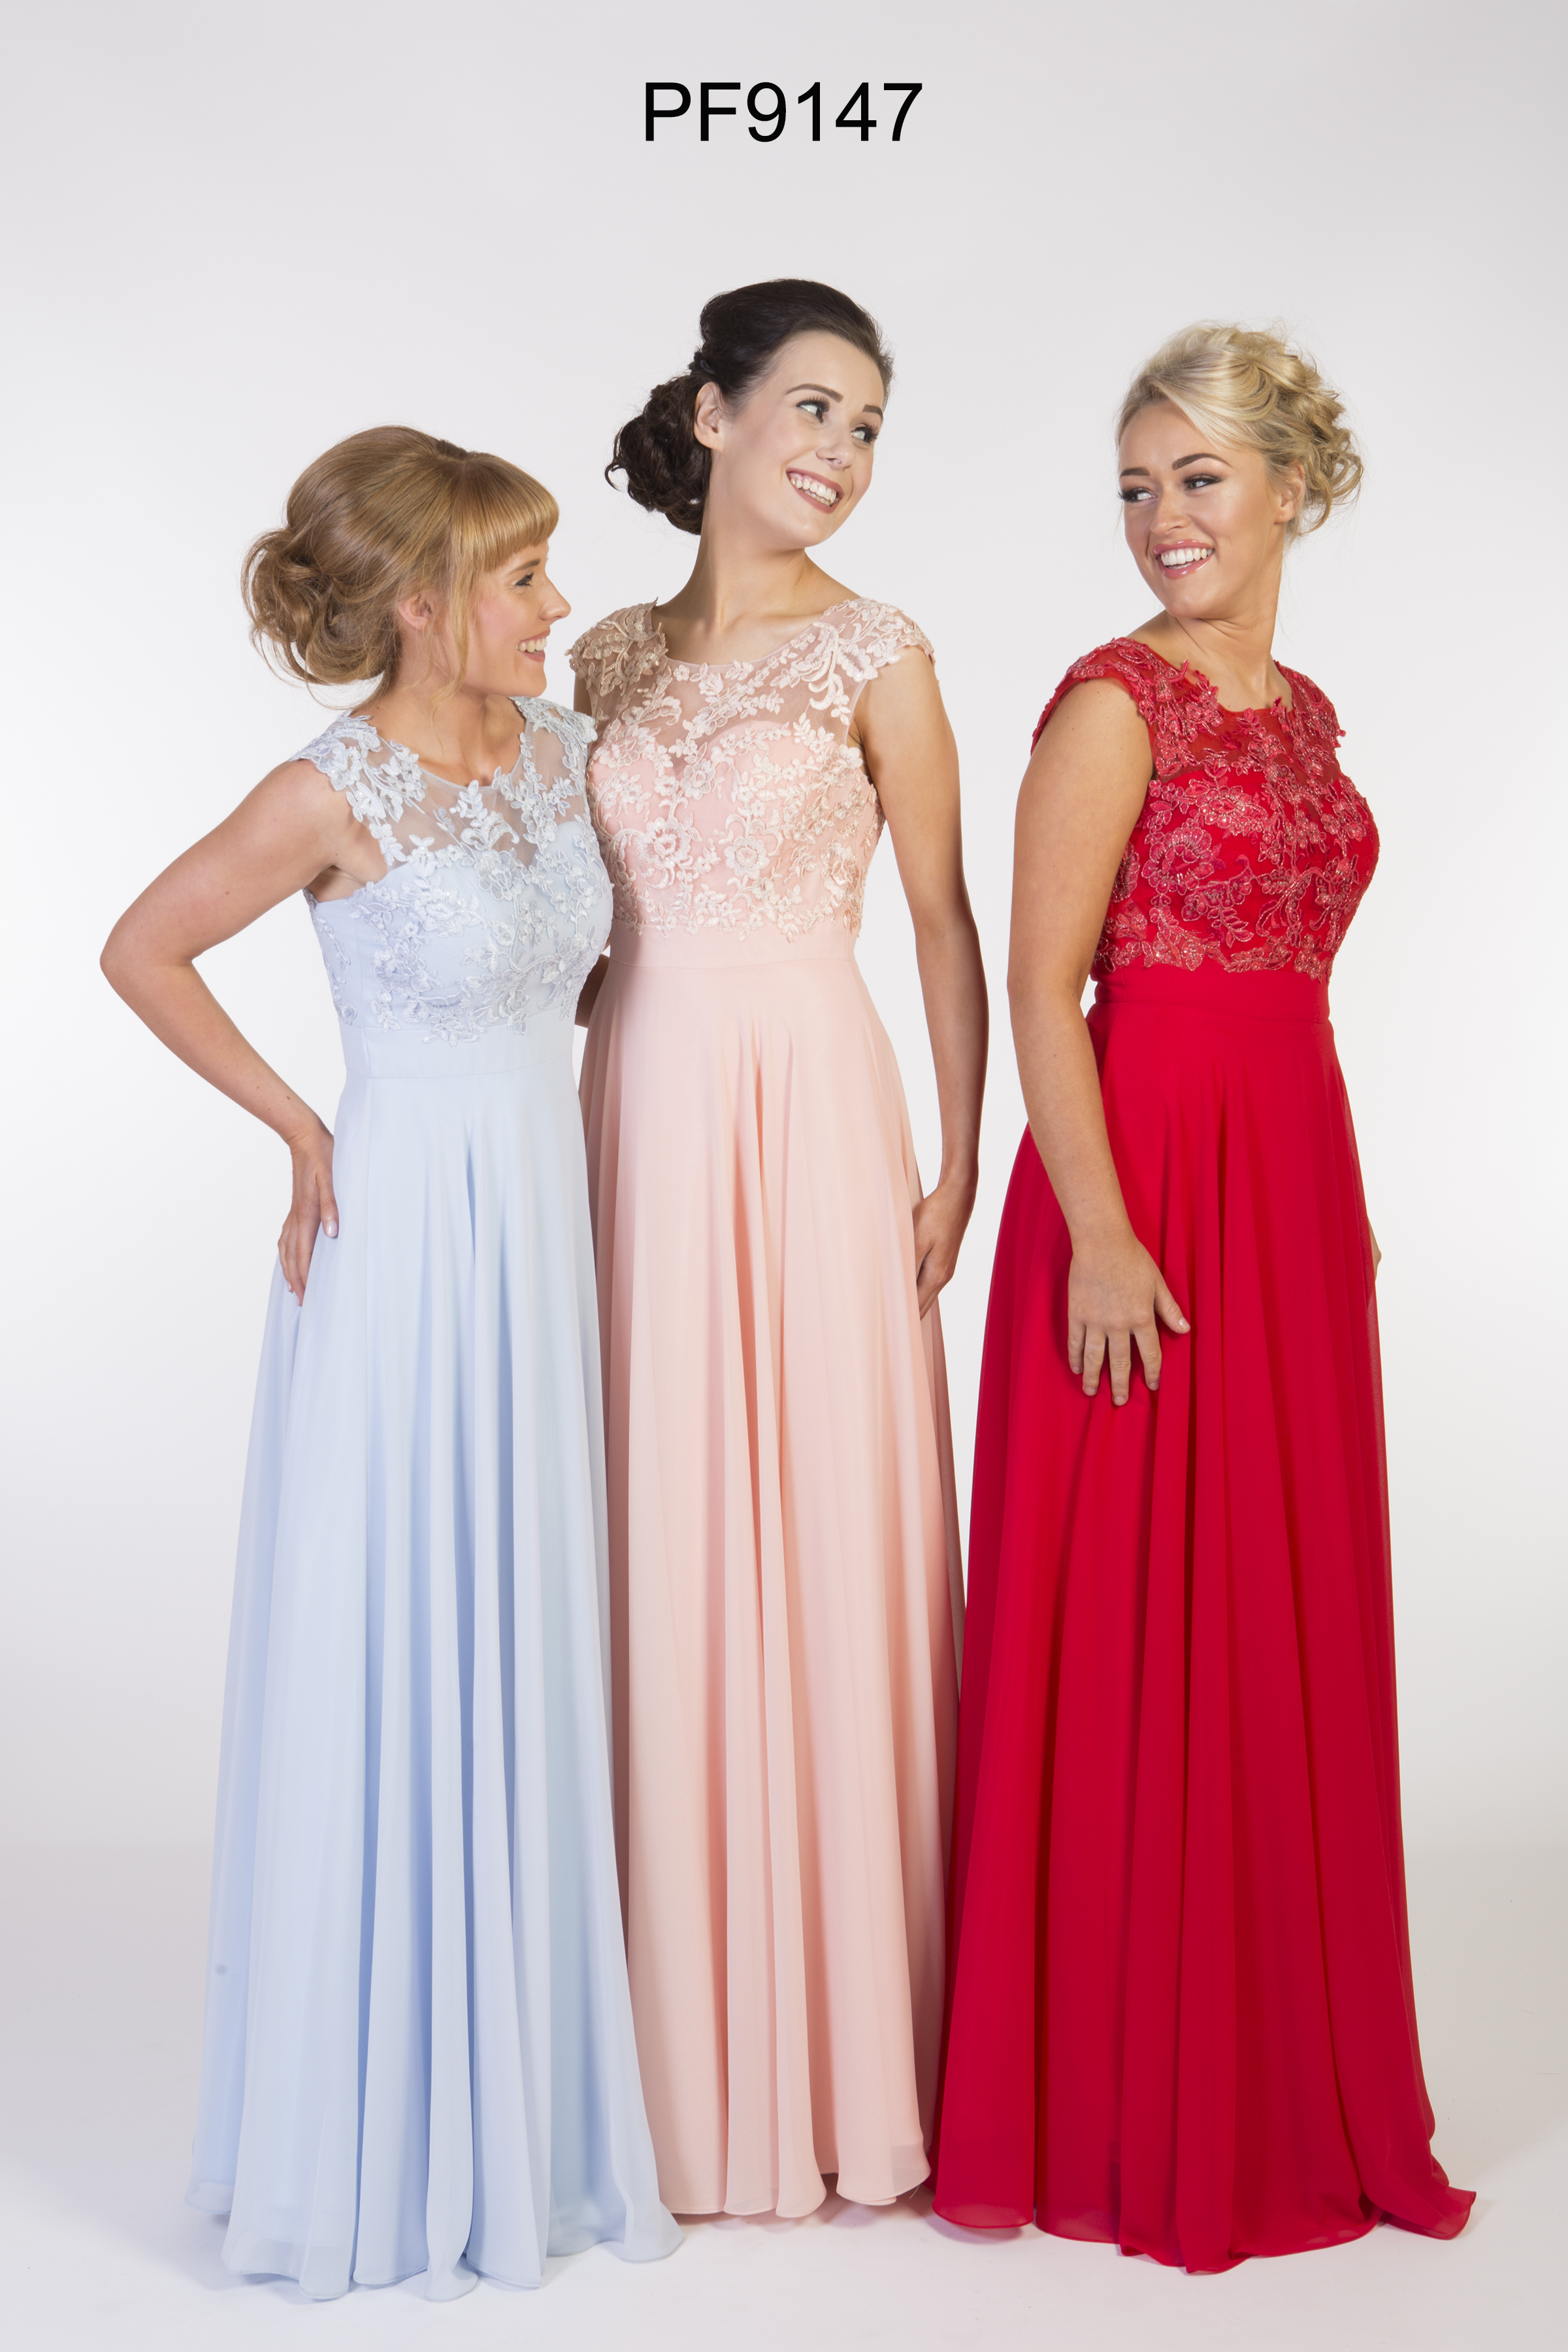 Prom Dresses, Pams People - make a party booking | Pams People